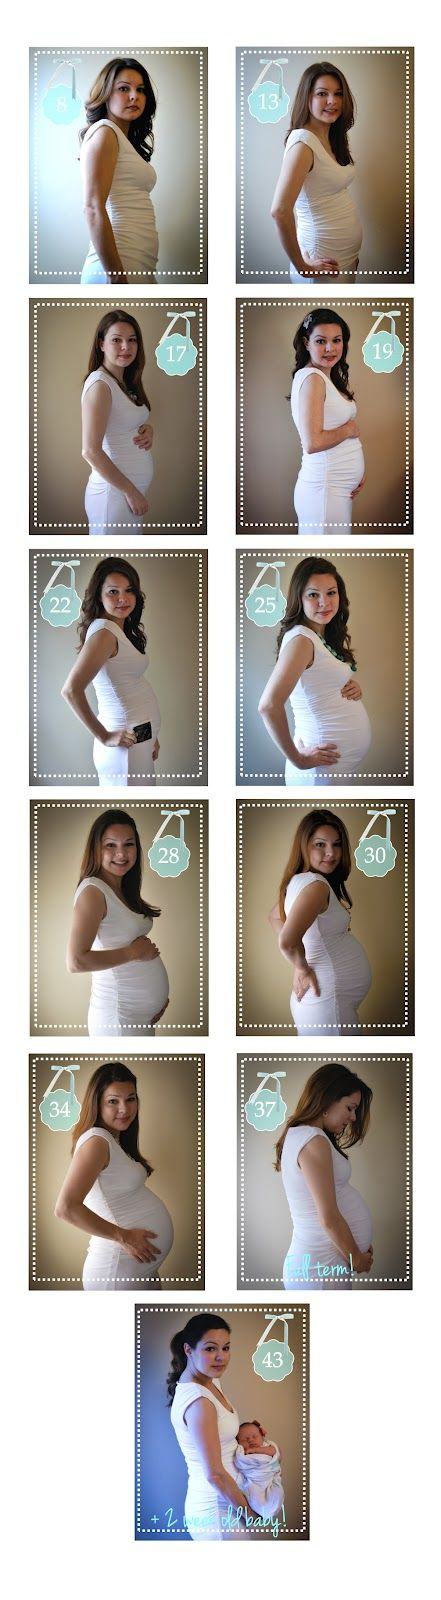 Pregnancy timeline photo project!